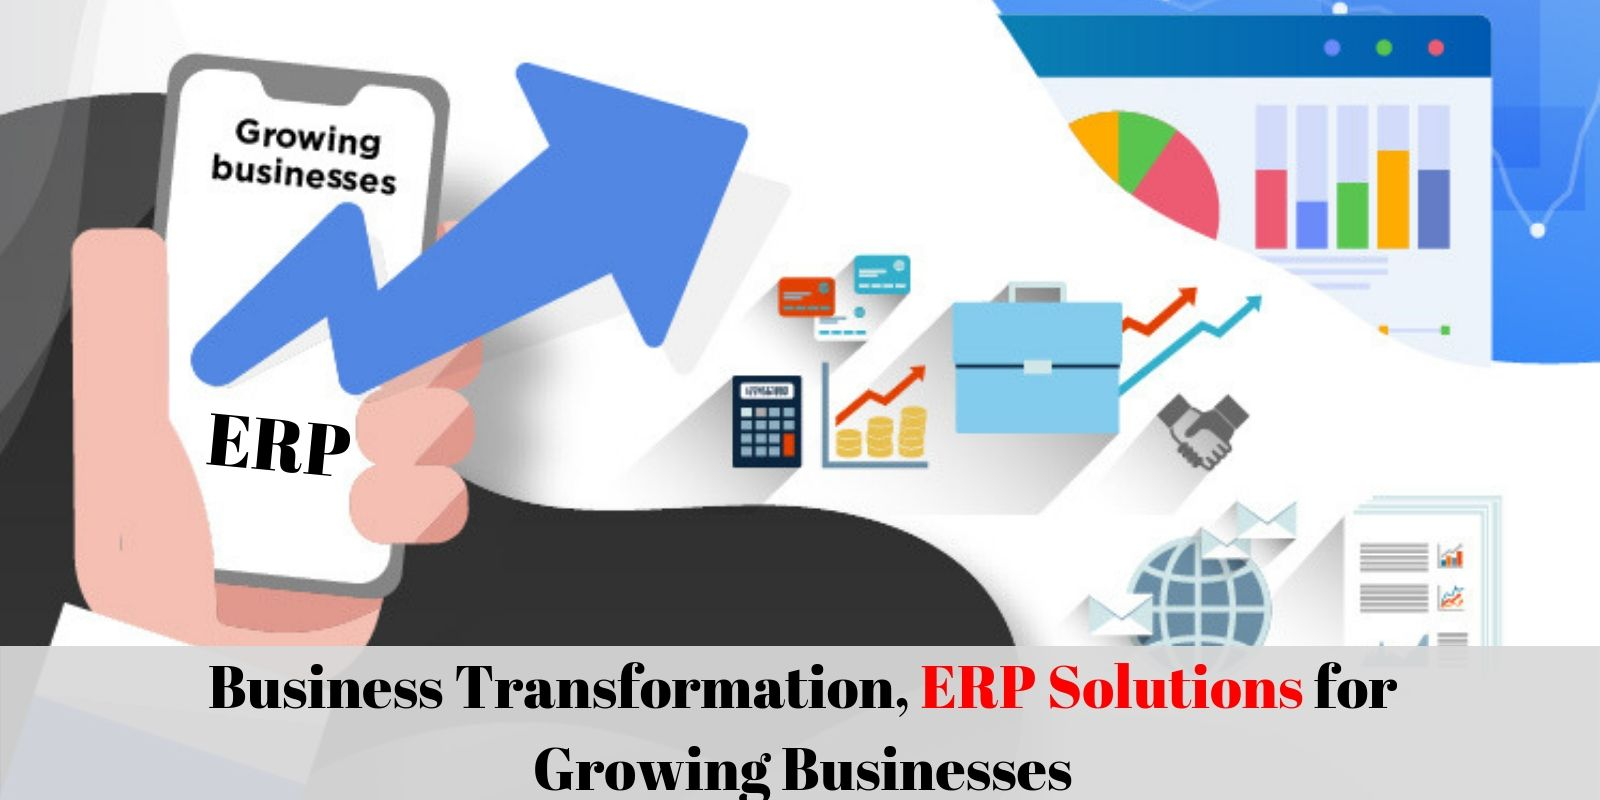 ERP solutionts